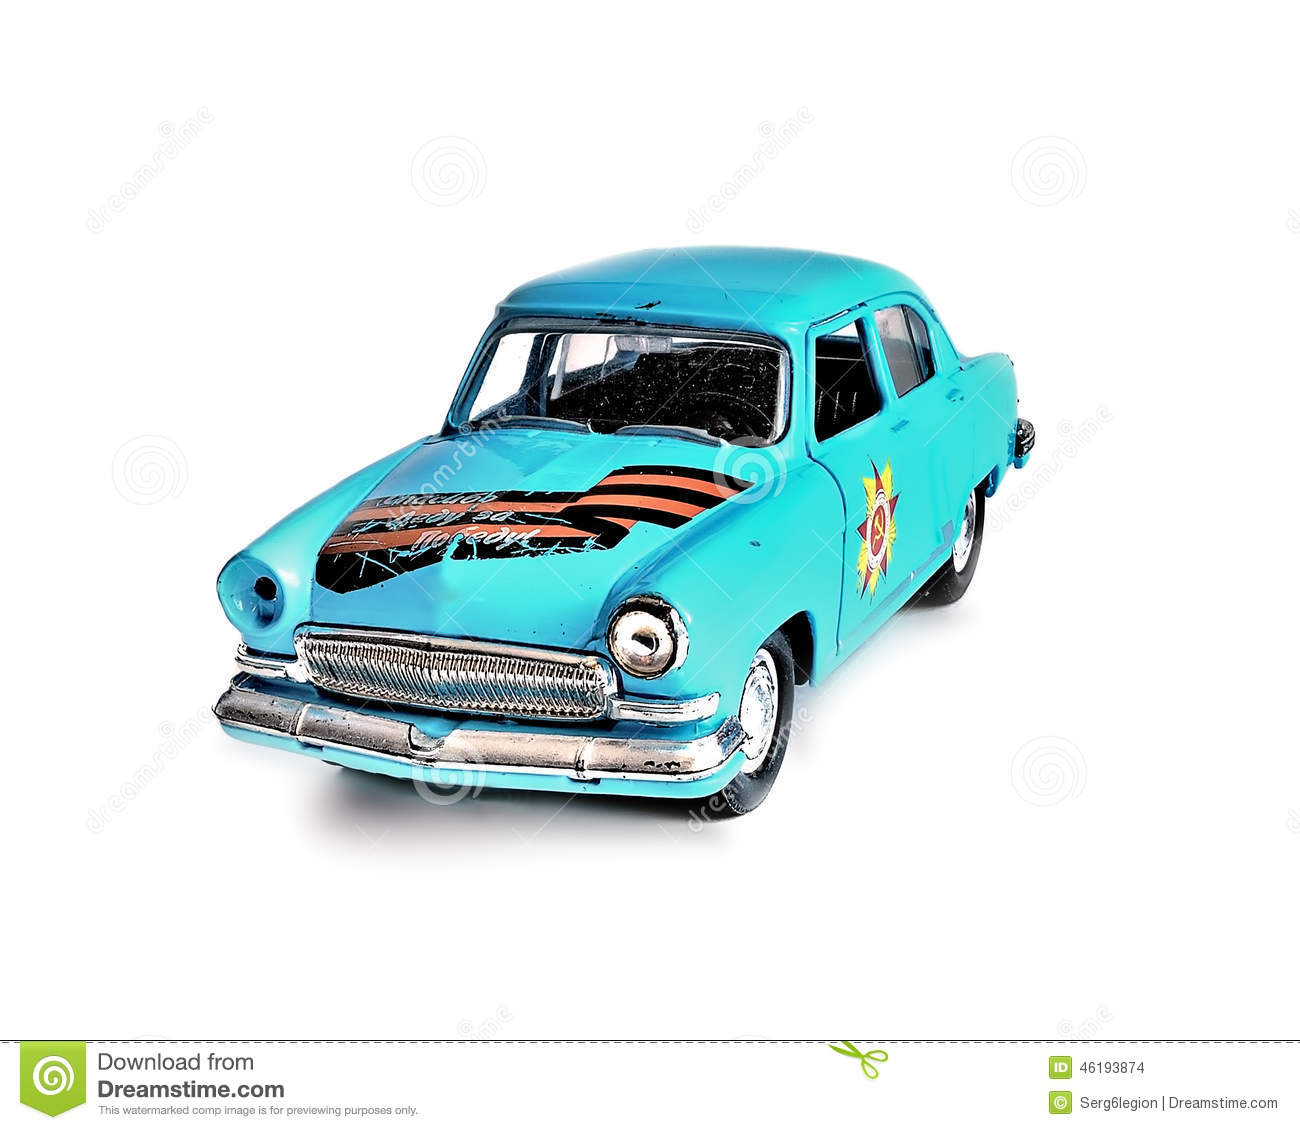 Car Toys Color : The toy car on a white background stock photo image